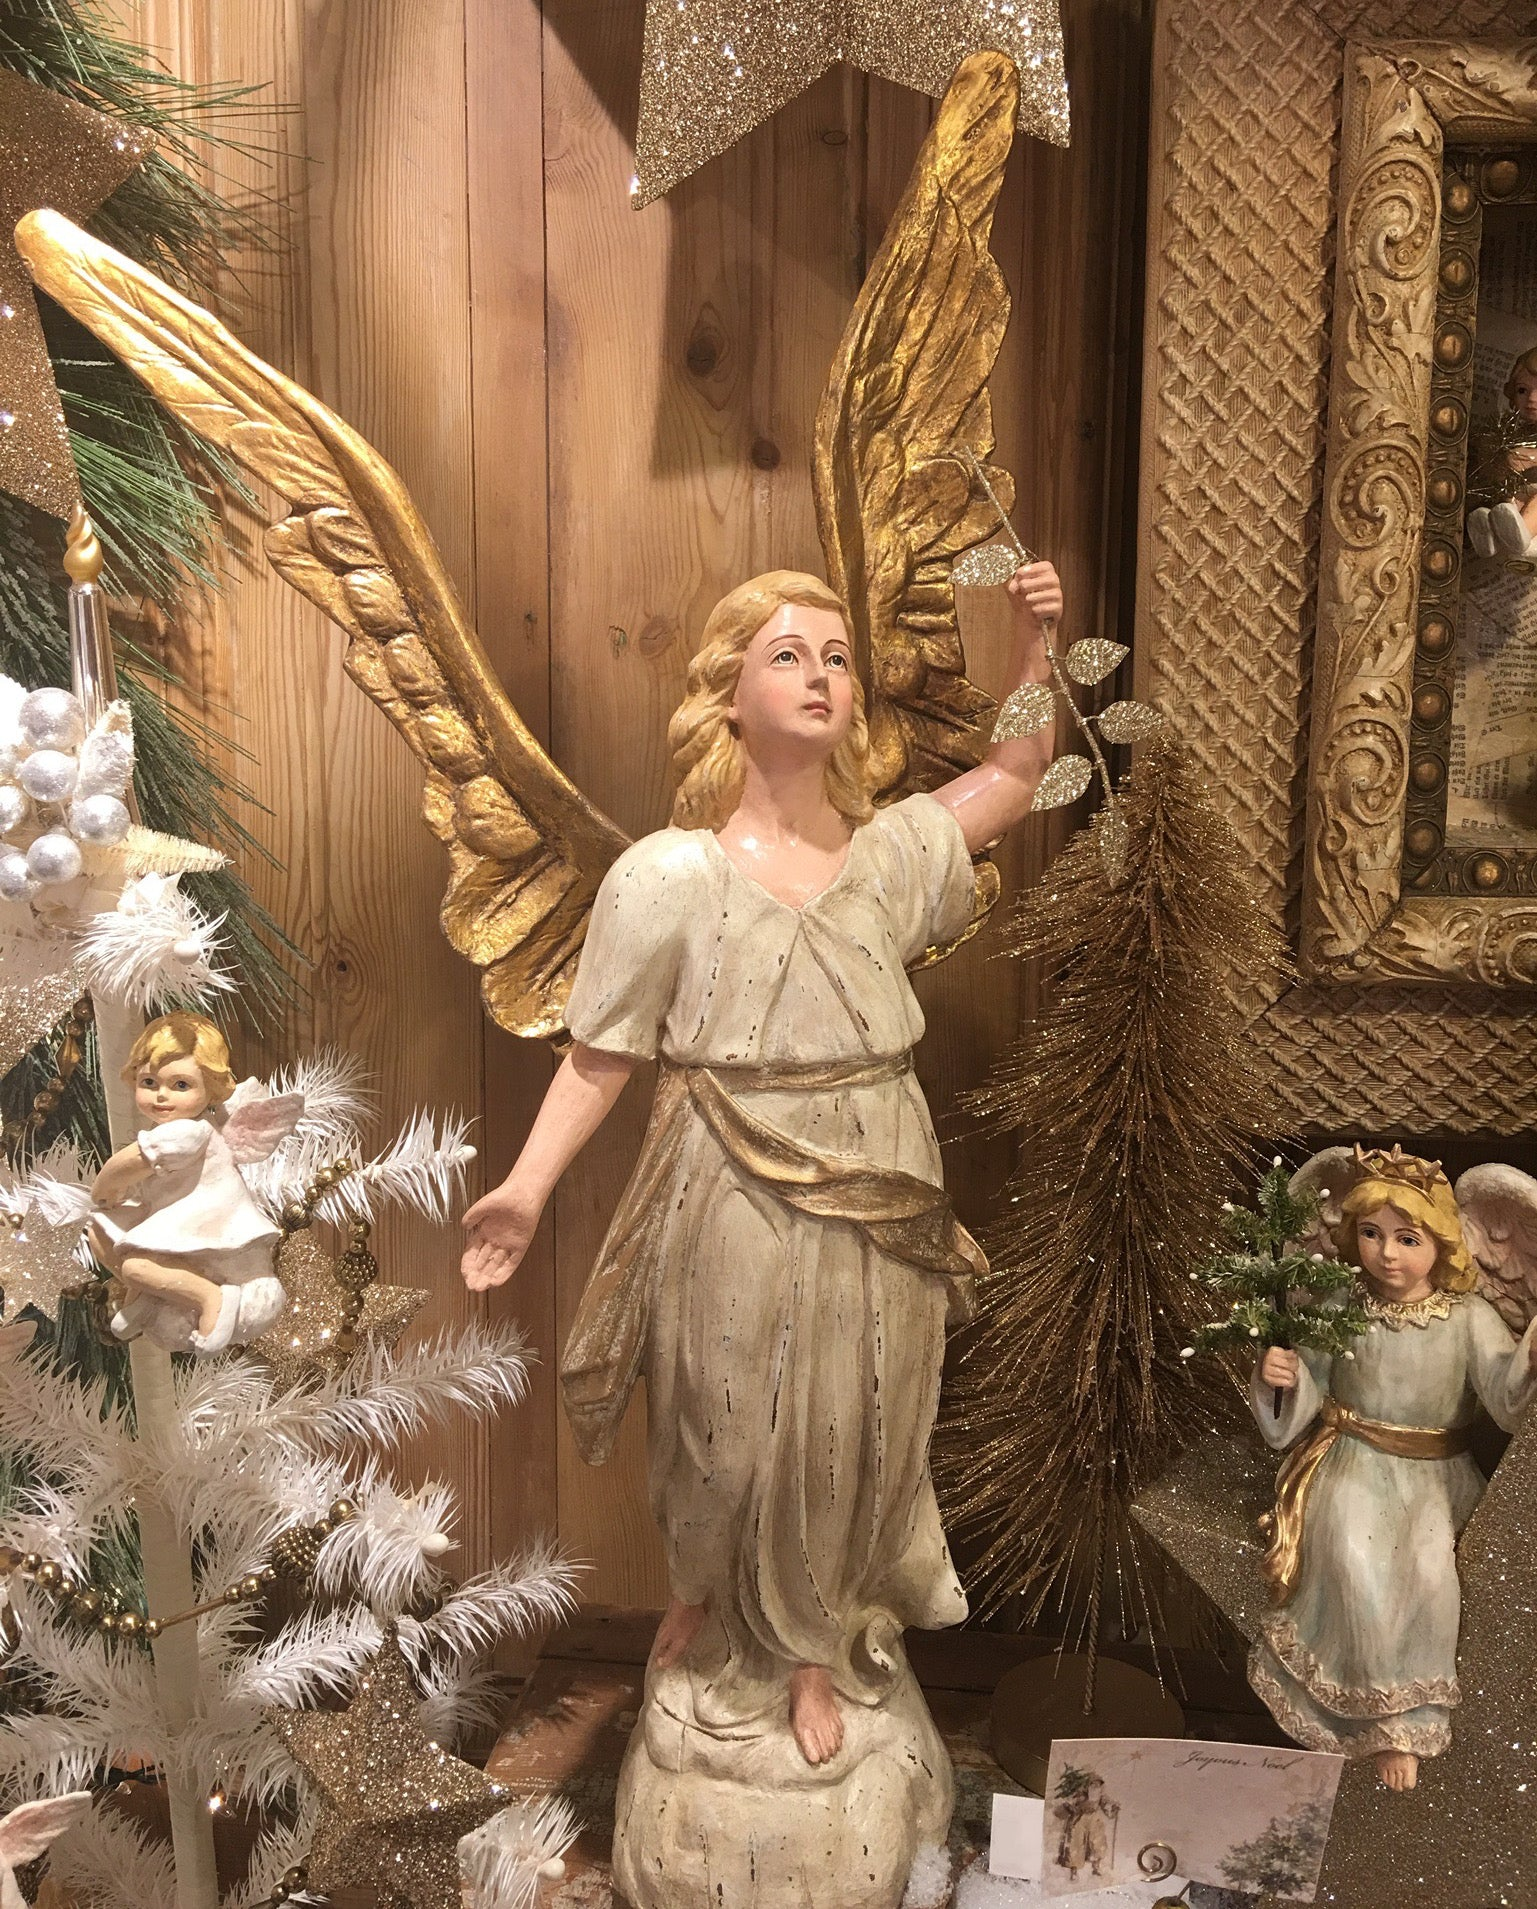 Peaceful Angel with Golden Wings